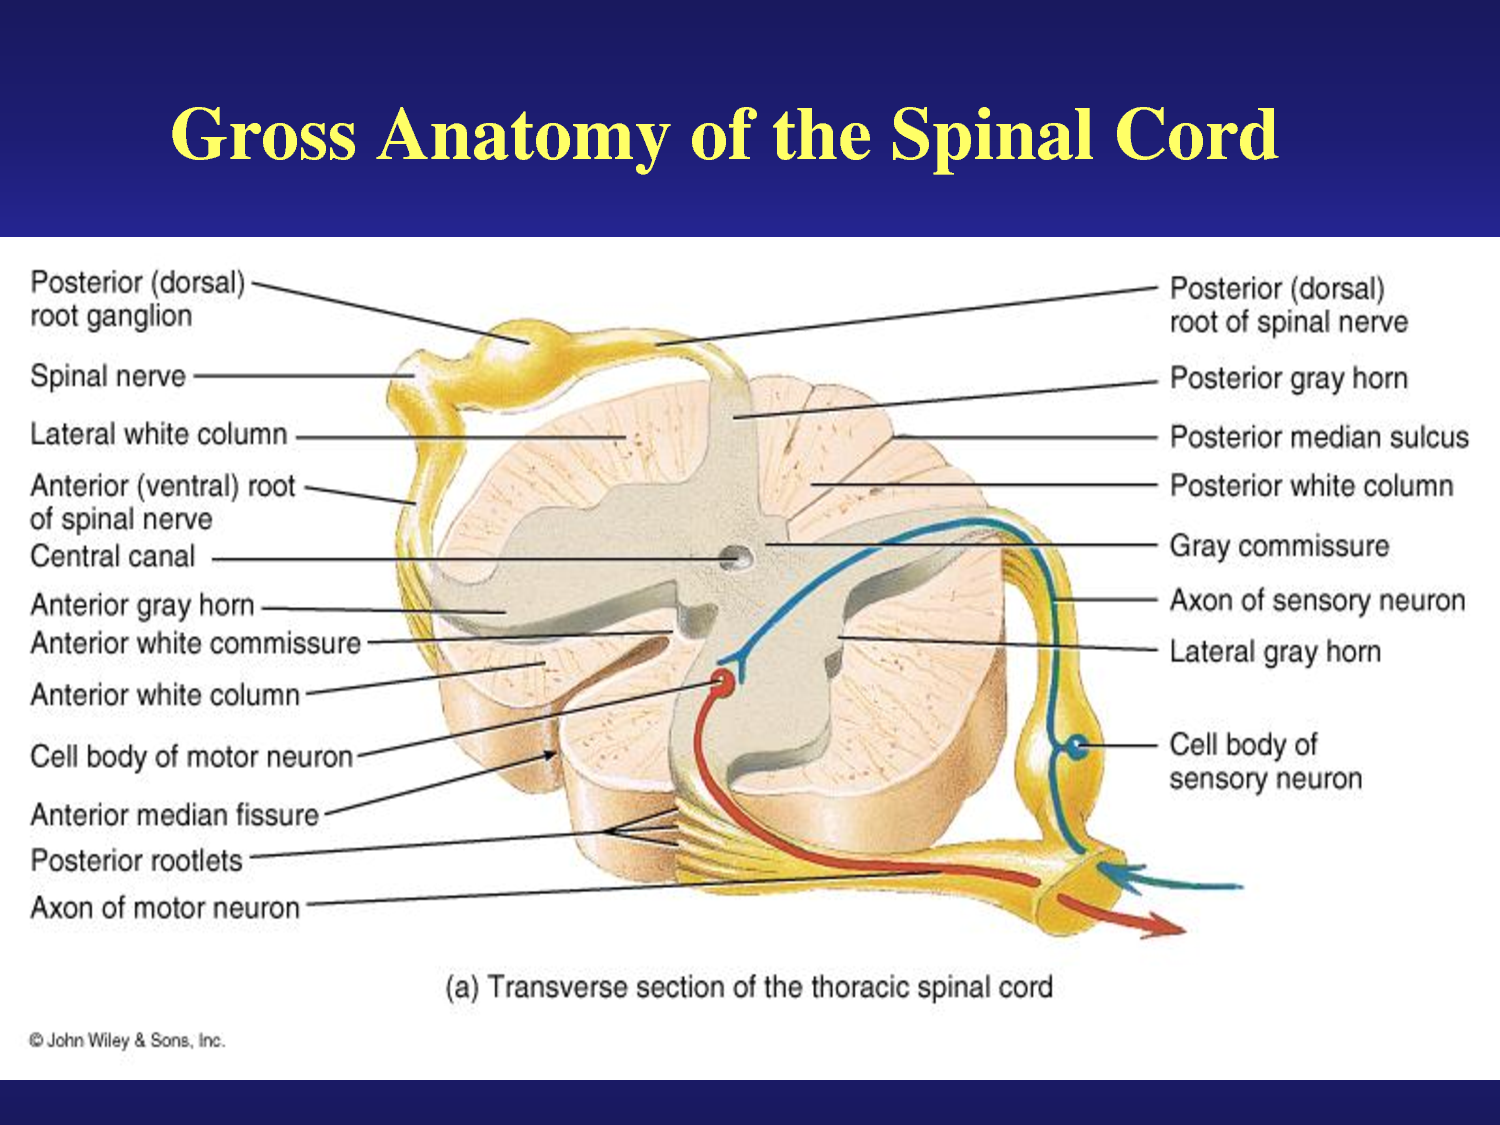 gray and white matter in the spinal cord - Google Search | Beauty ...